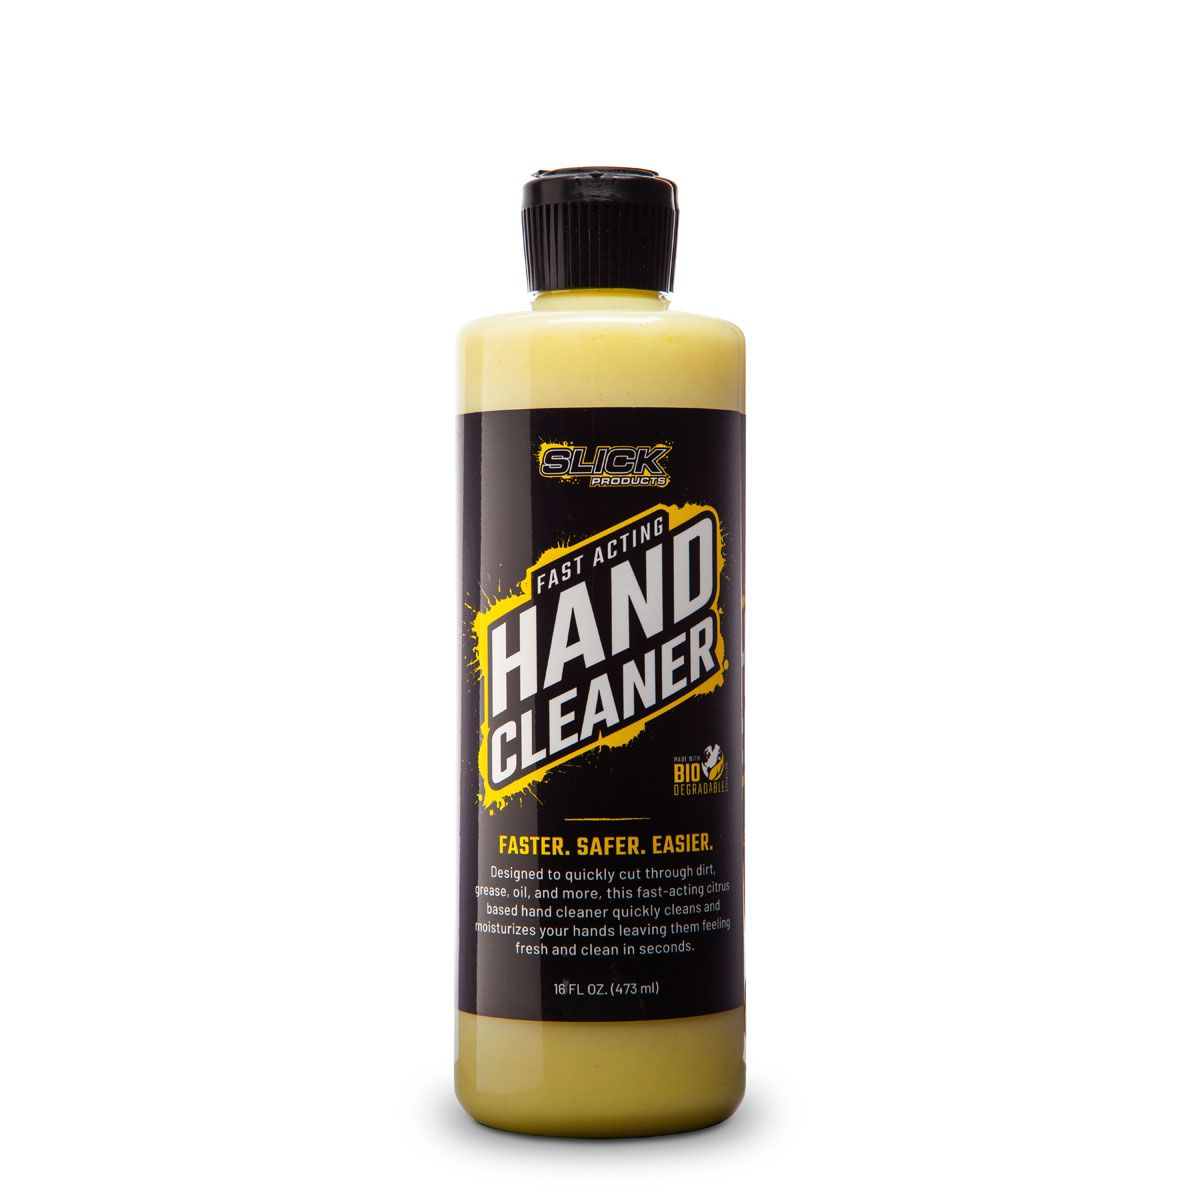 The Slick Products Hand Cleaner